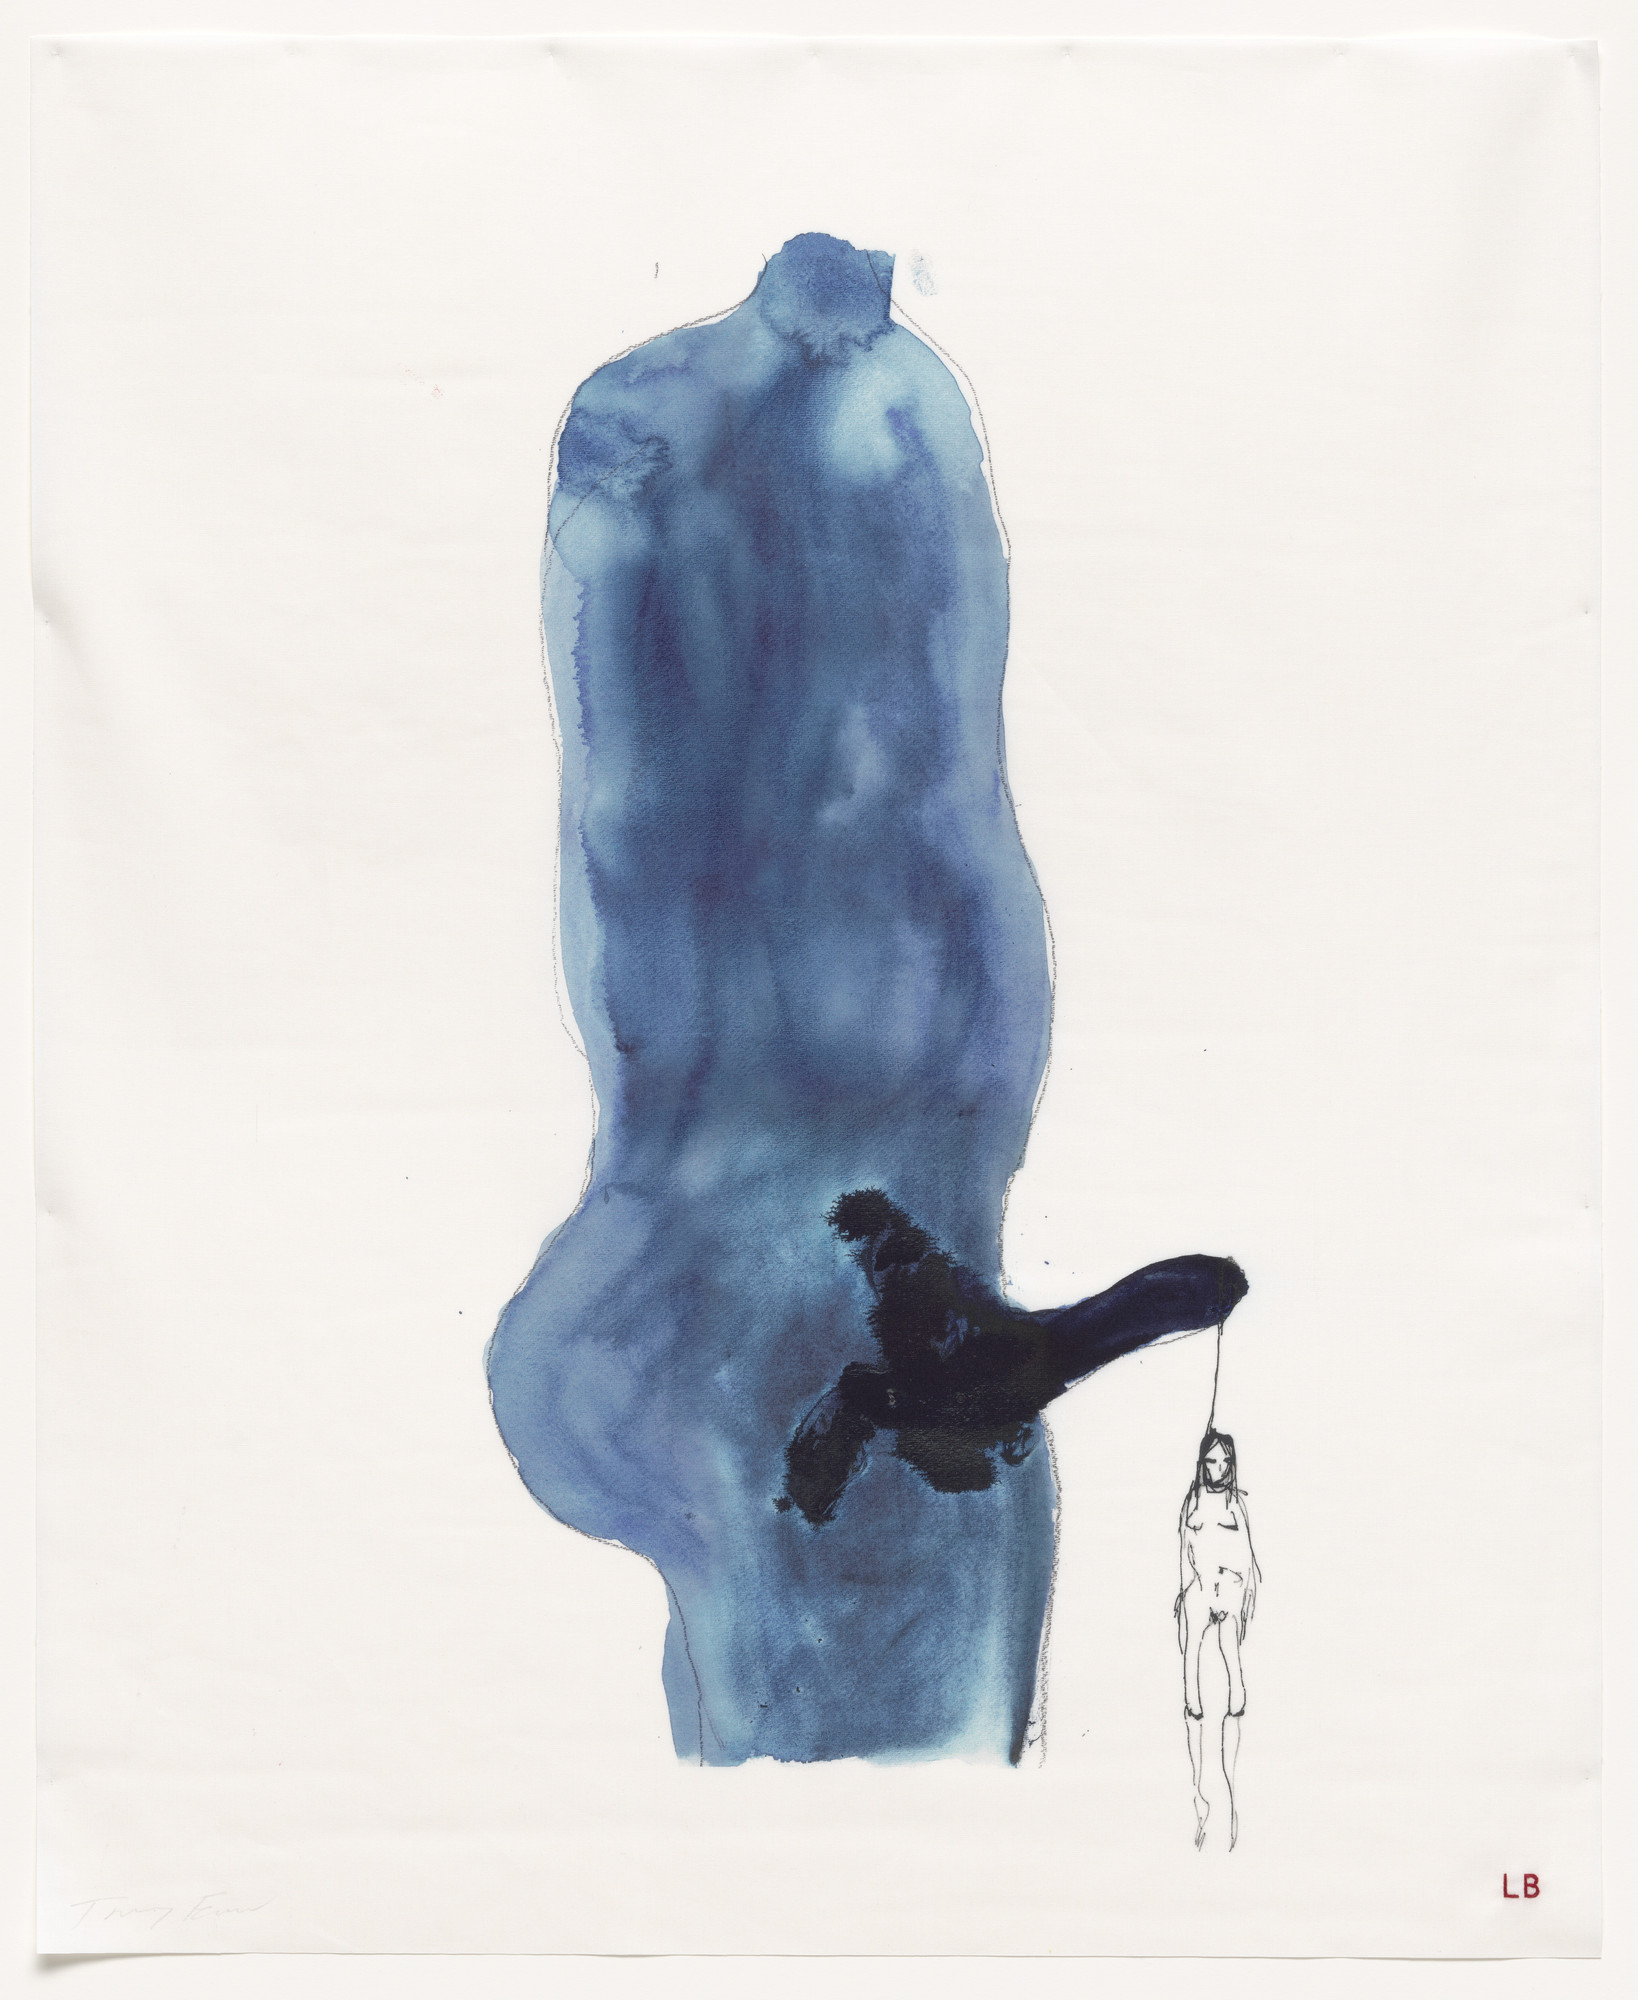 Louise Bourgeois, Tracey Emin. Just Hanging, no. 11 of 16, from the series, Do Not Abandon Me. 2009-2010